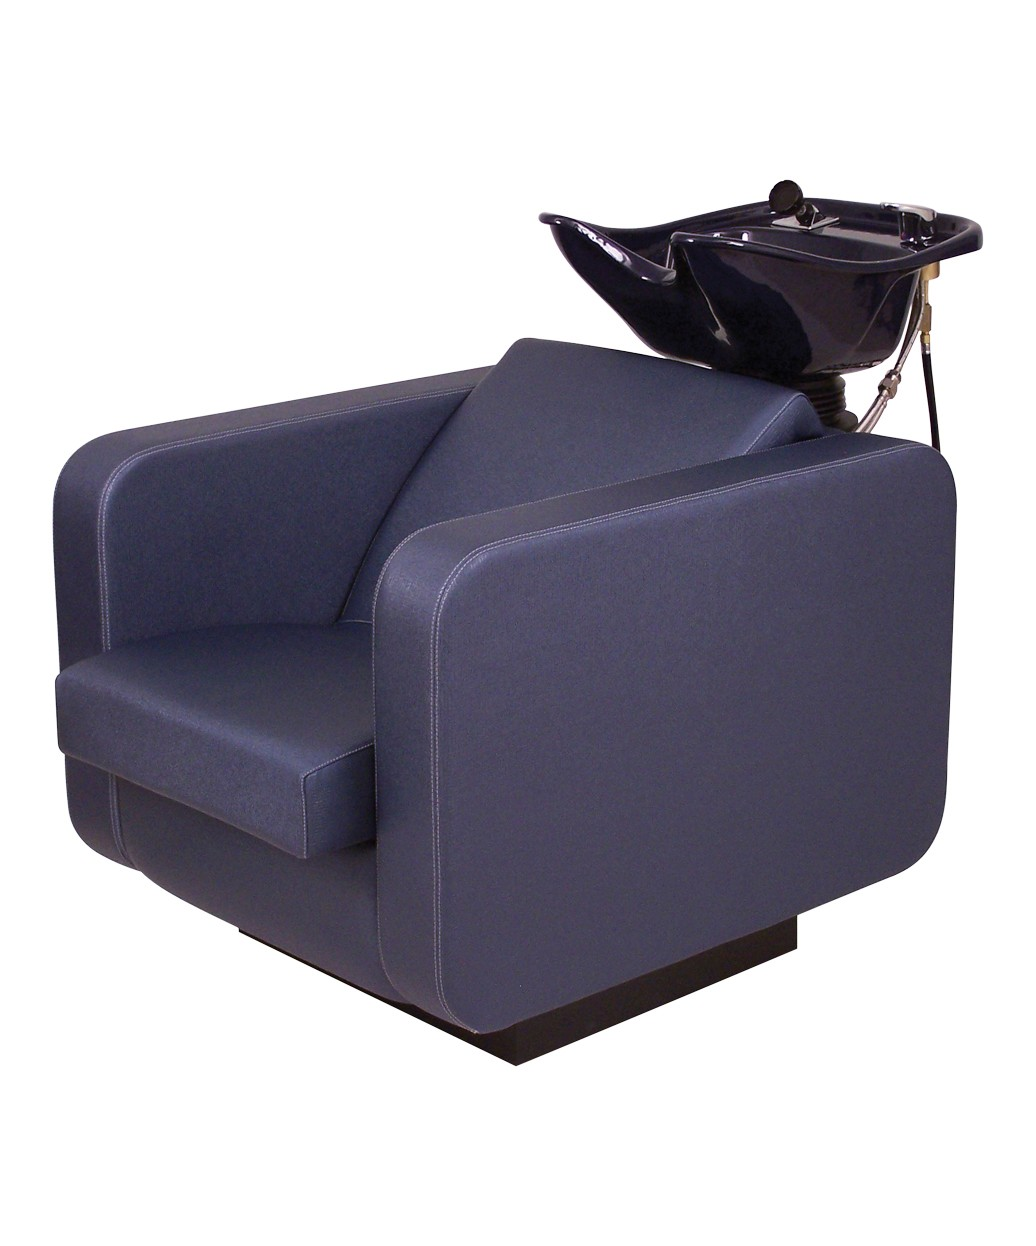 Plush Chairs Belvedere Ph04 Plush Backwash Unit